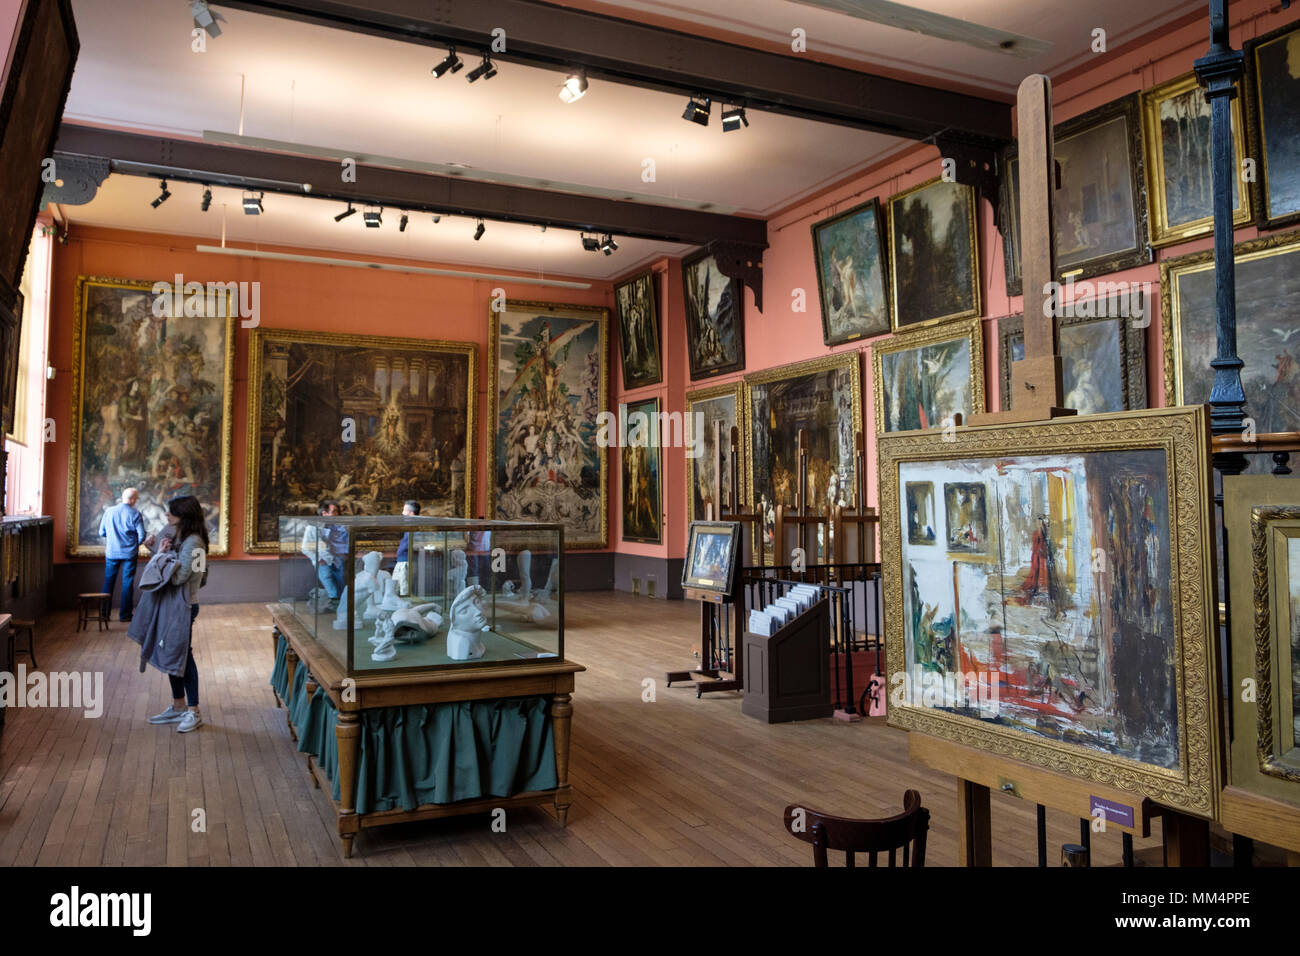 Musée National Gustave Moreau, Home and Studio of symbolist Gustave Moreau, Paris, France - Stock Image